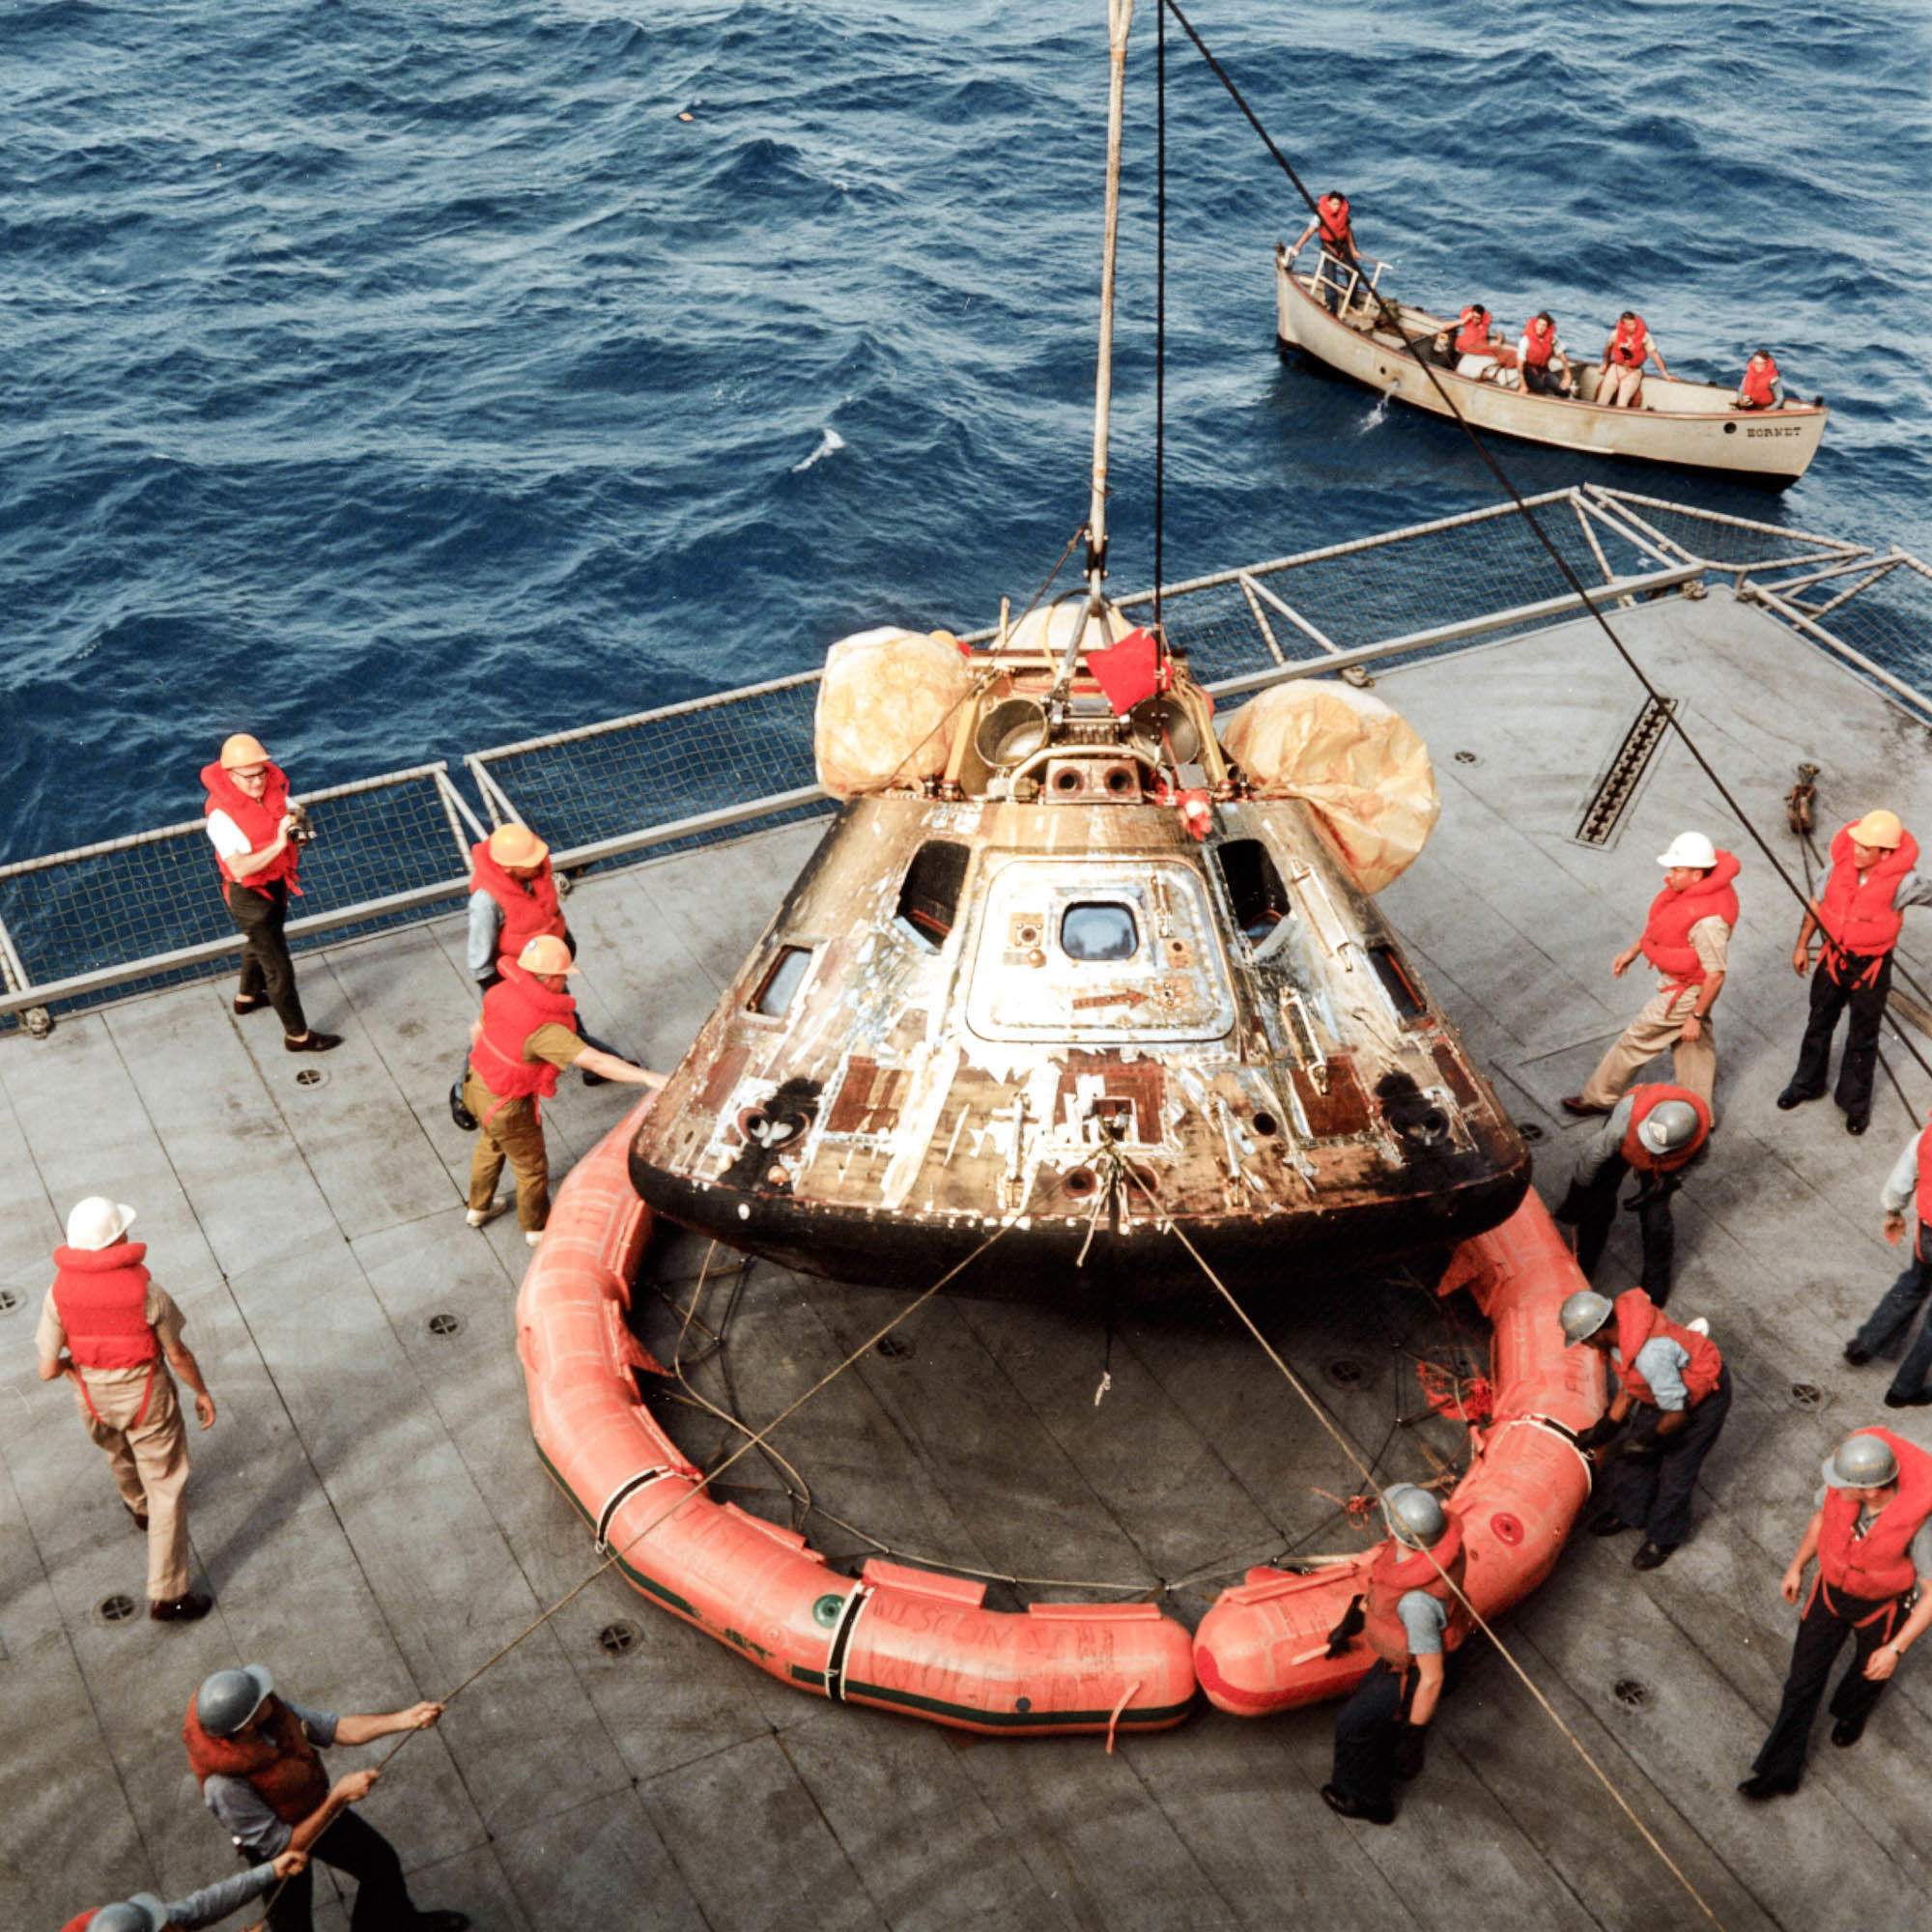 Moonwalkers Apollo 11 Capsule Gets Needed Primping For